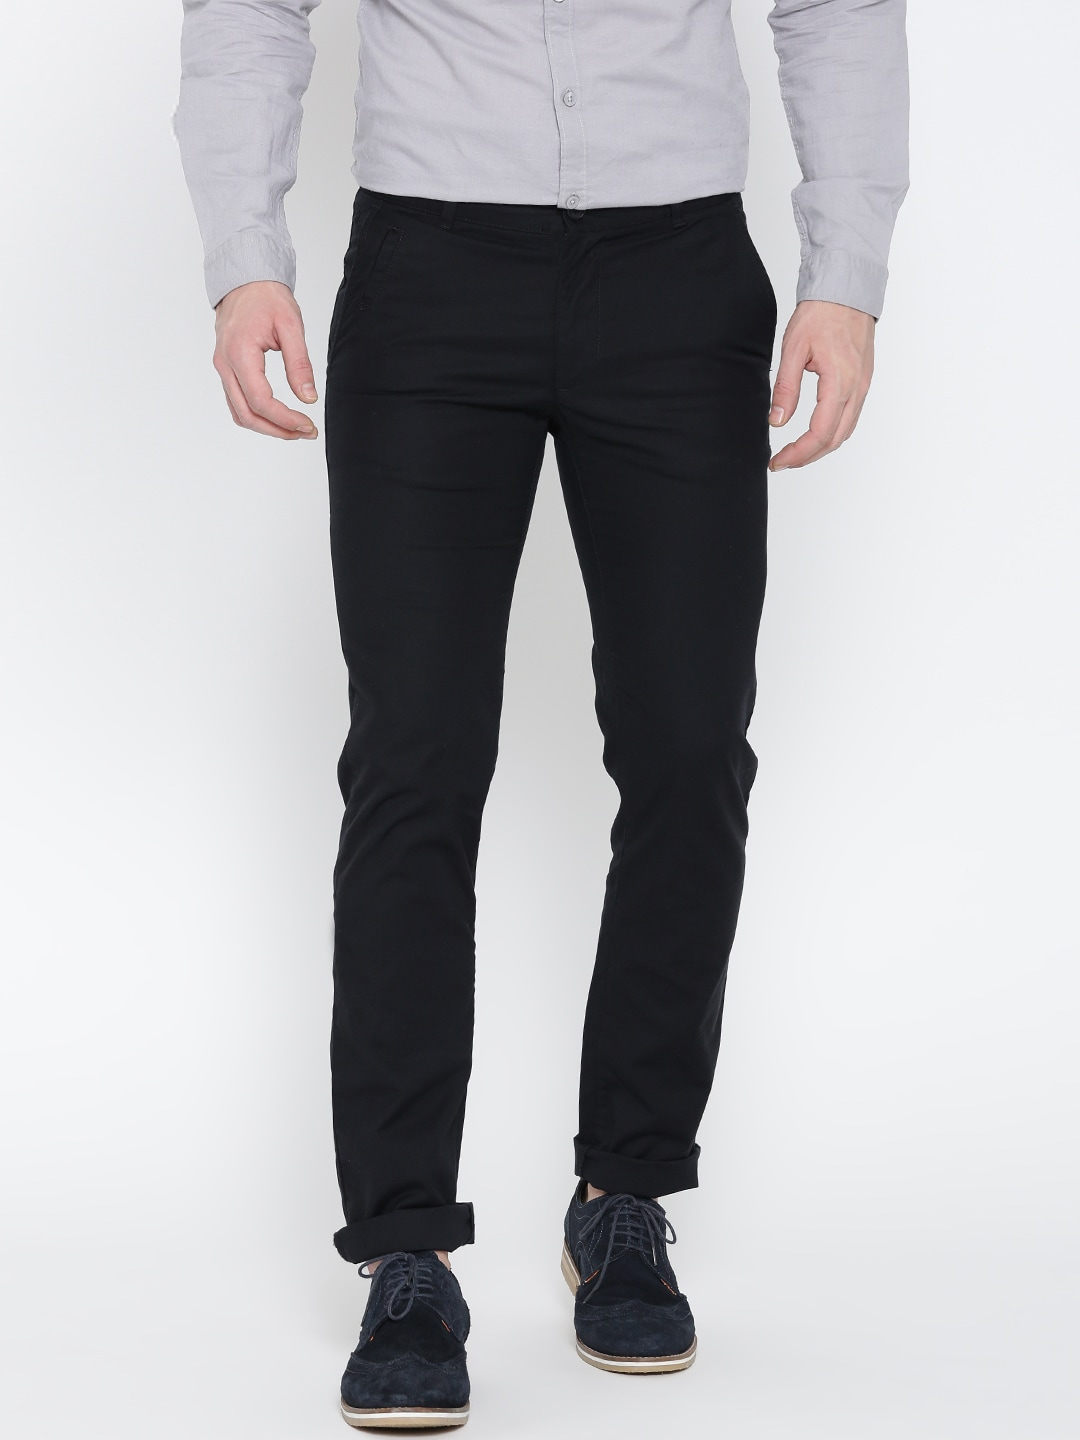 53b109fce United Colors Of Benetton Trousers - Buy United Colors Of Benetton Trousers  Online in India